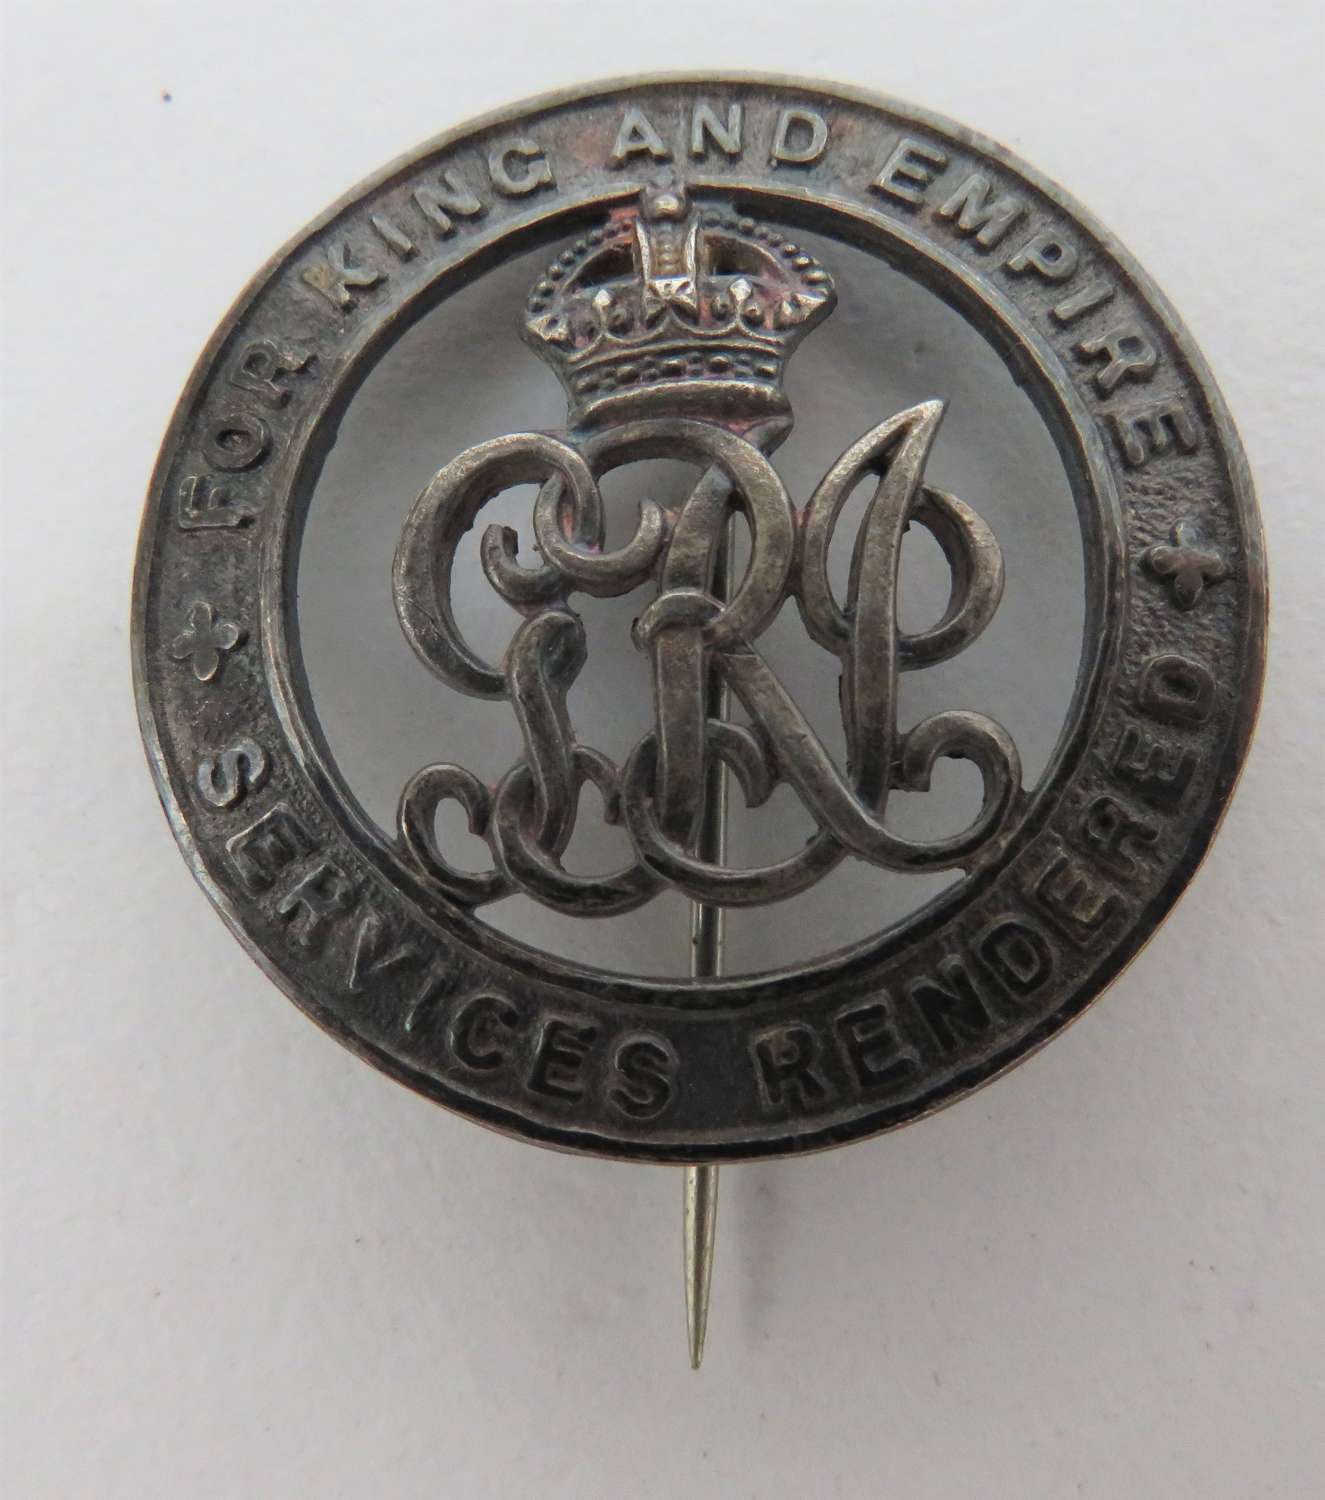 WW1 Services Rendered Silver Badge